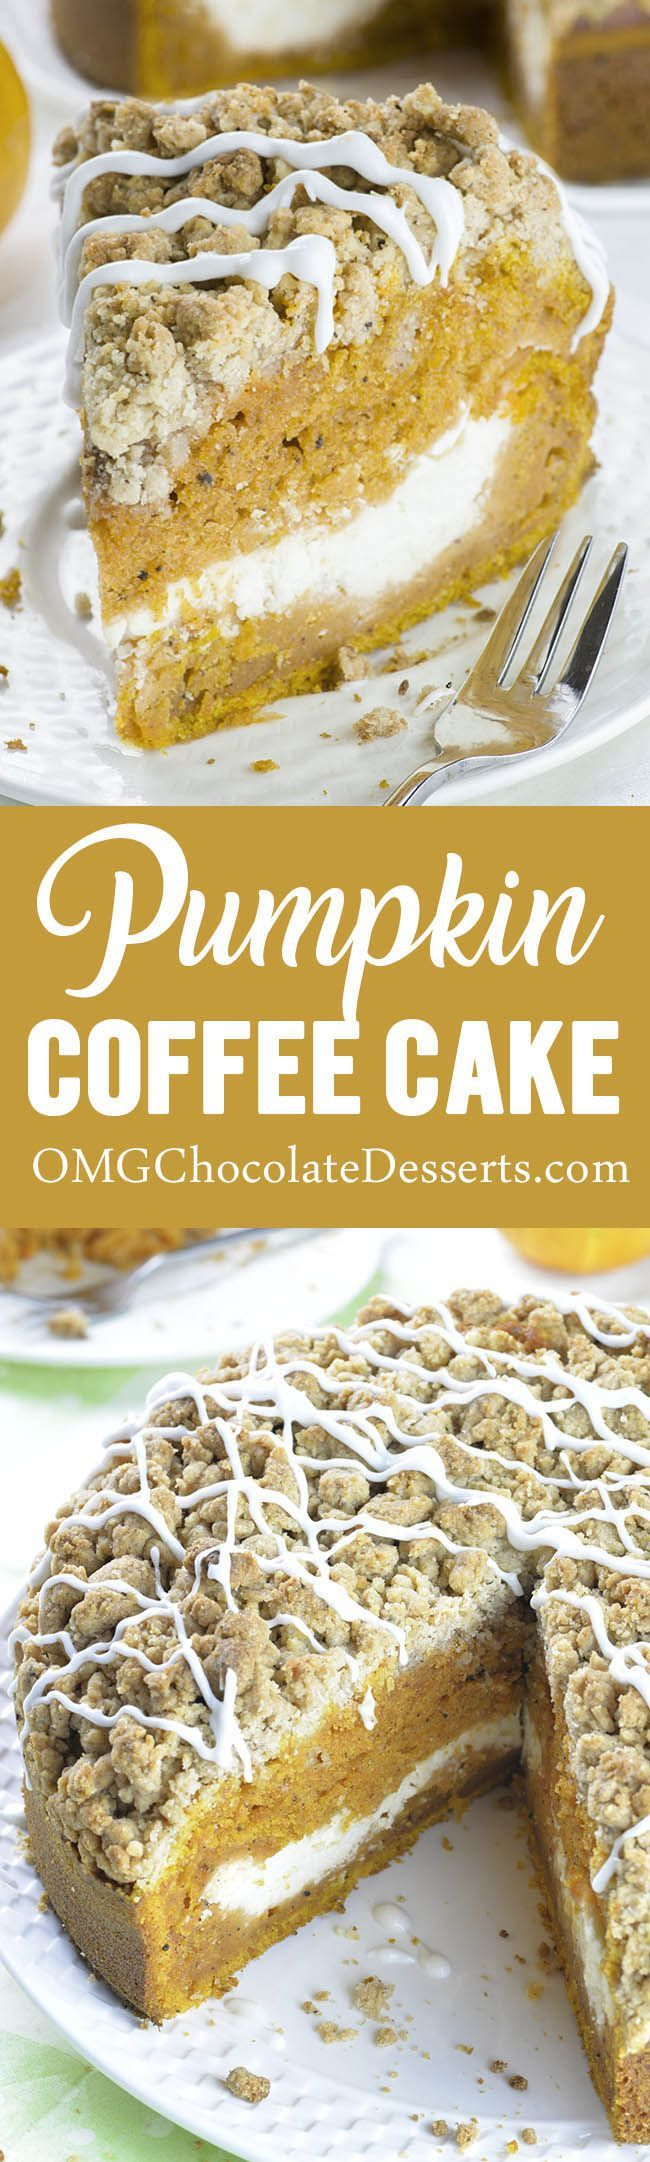 Pumpkin Coffee Cake, Pumpkin Coffee Cake,